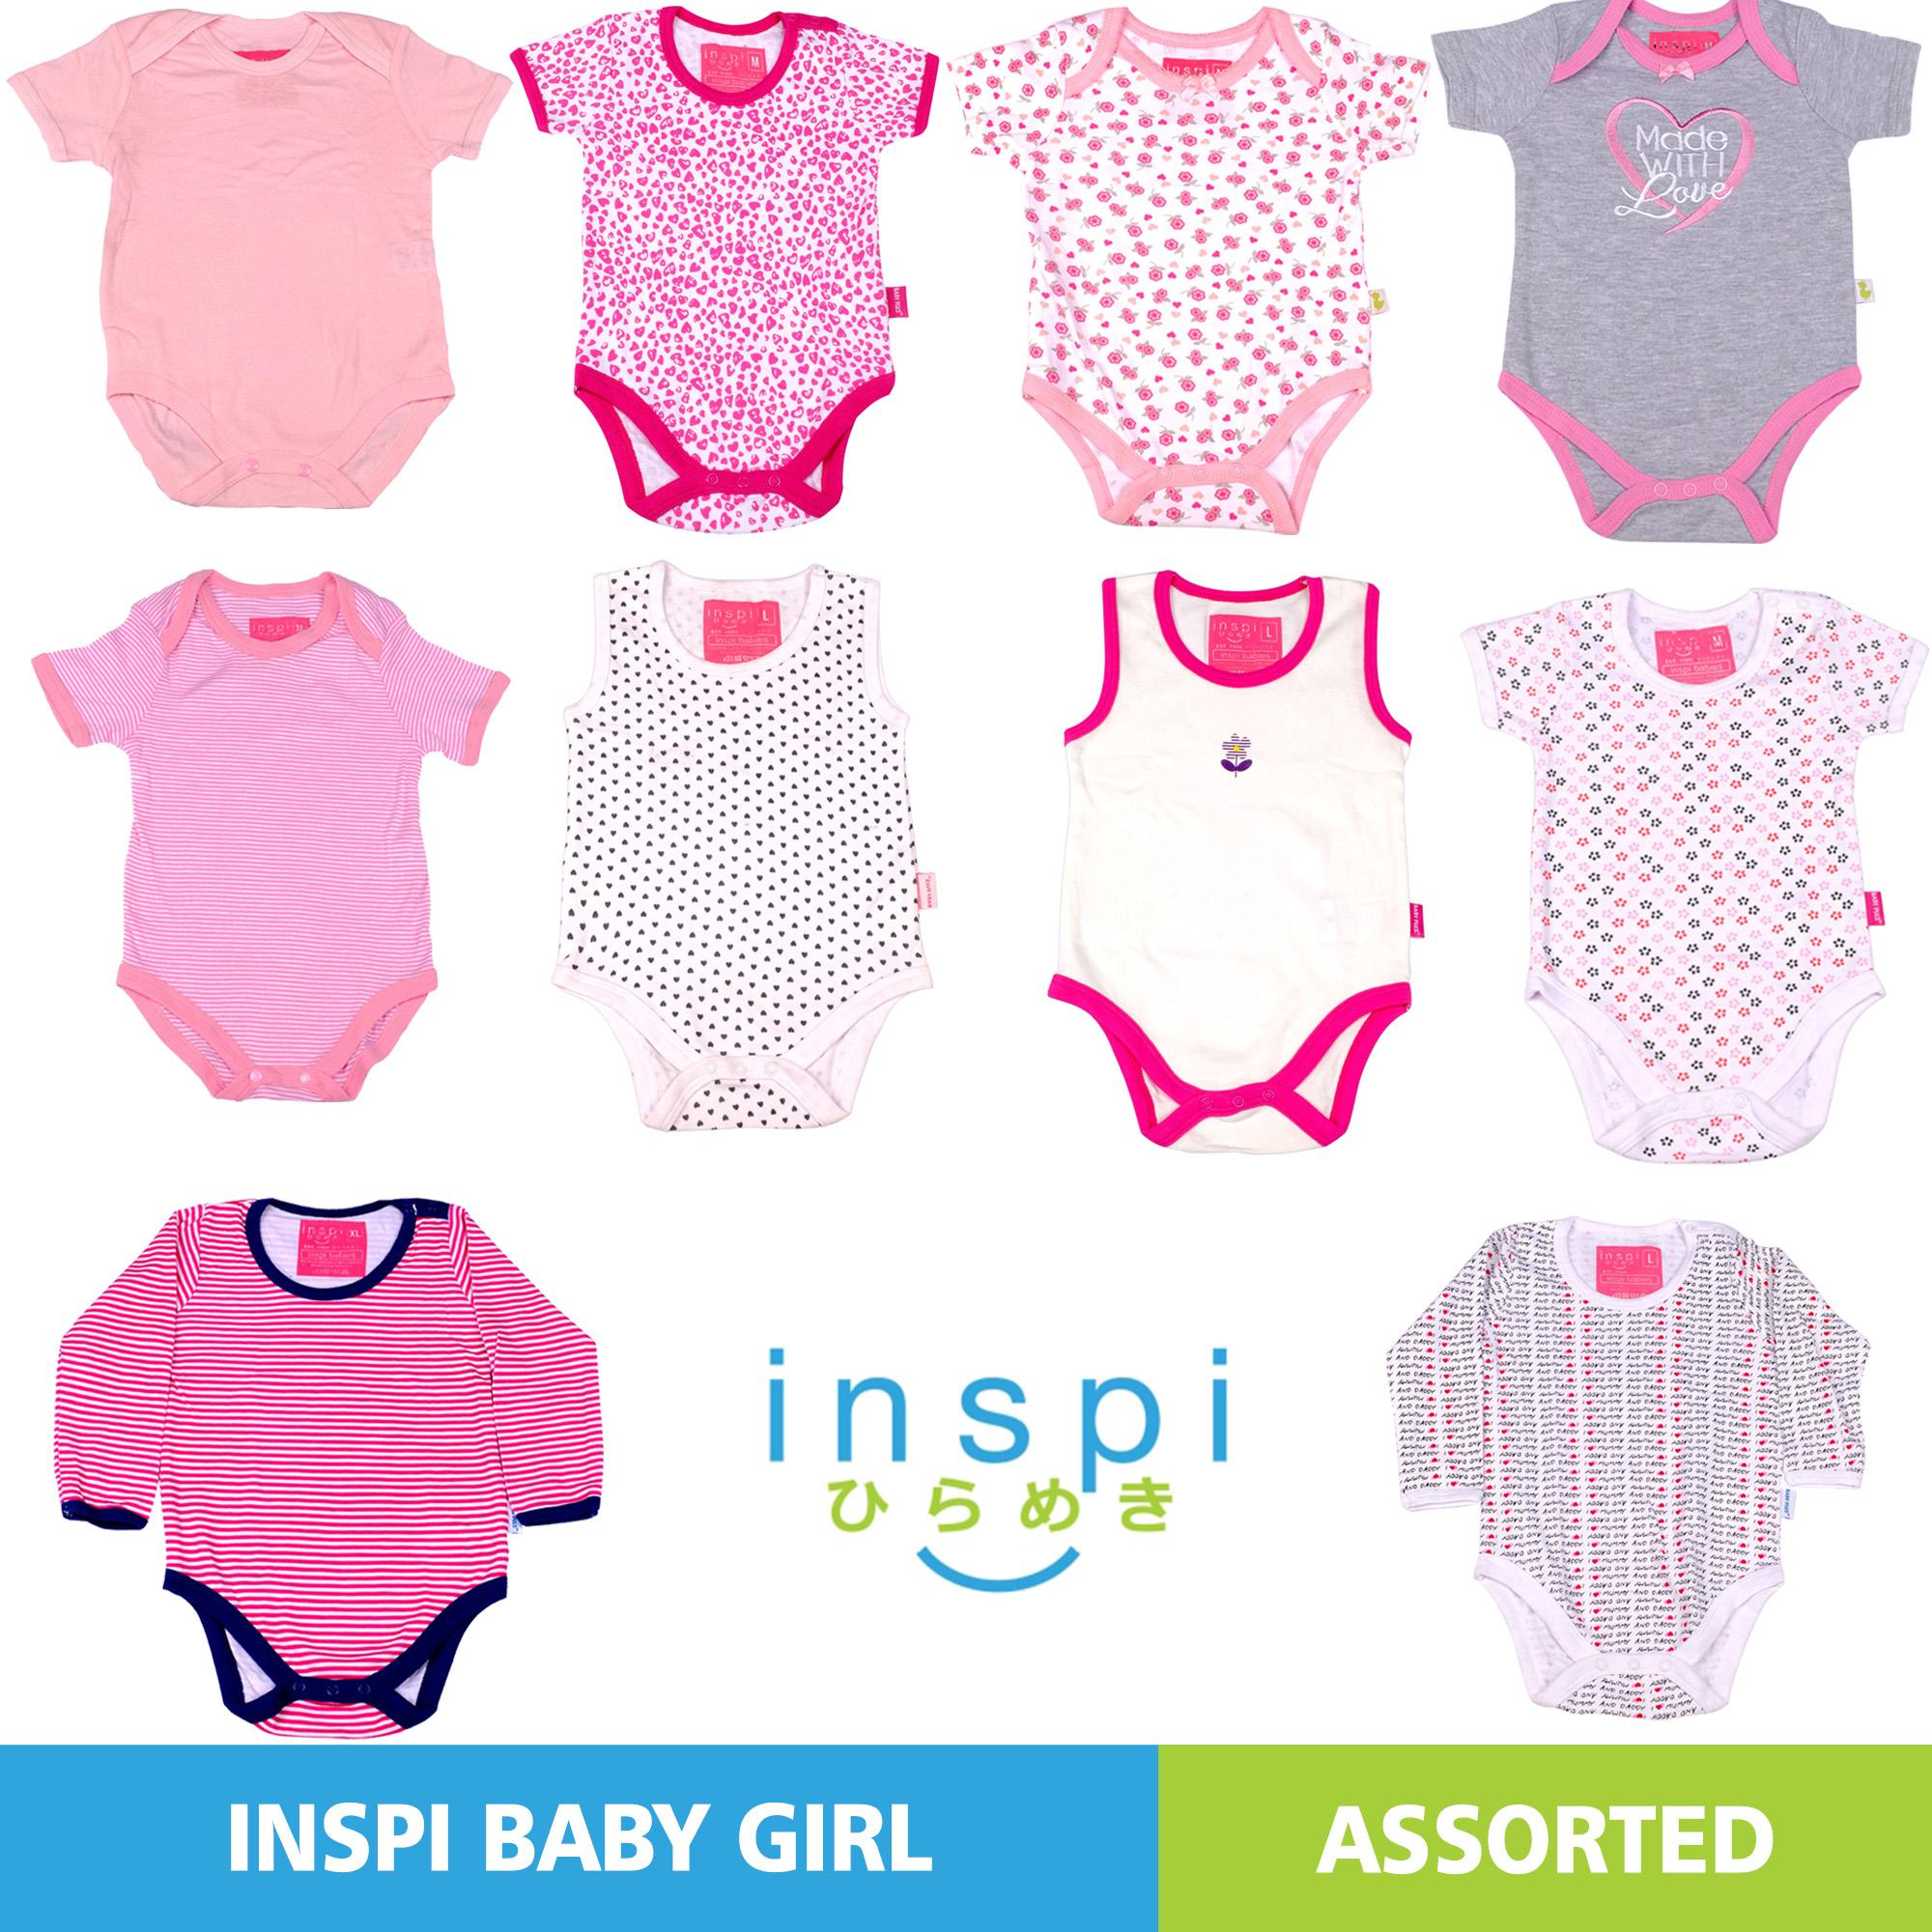 0c489c1dbab6 Onesies for Girls for sale - Body Suits for Girls online brands ...